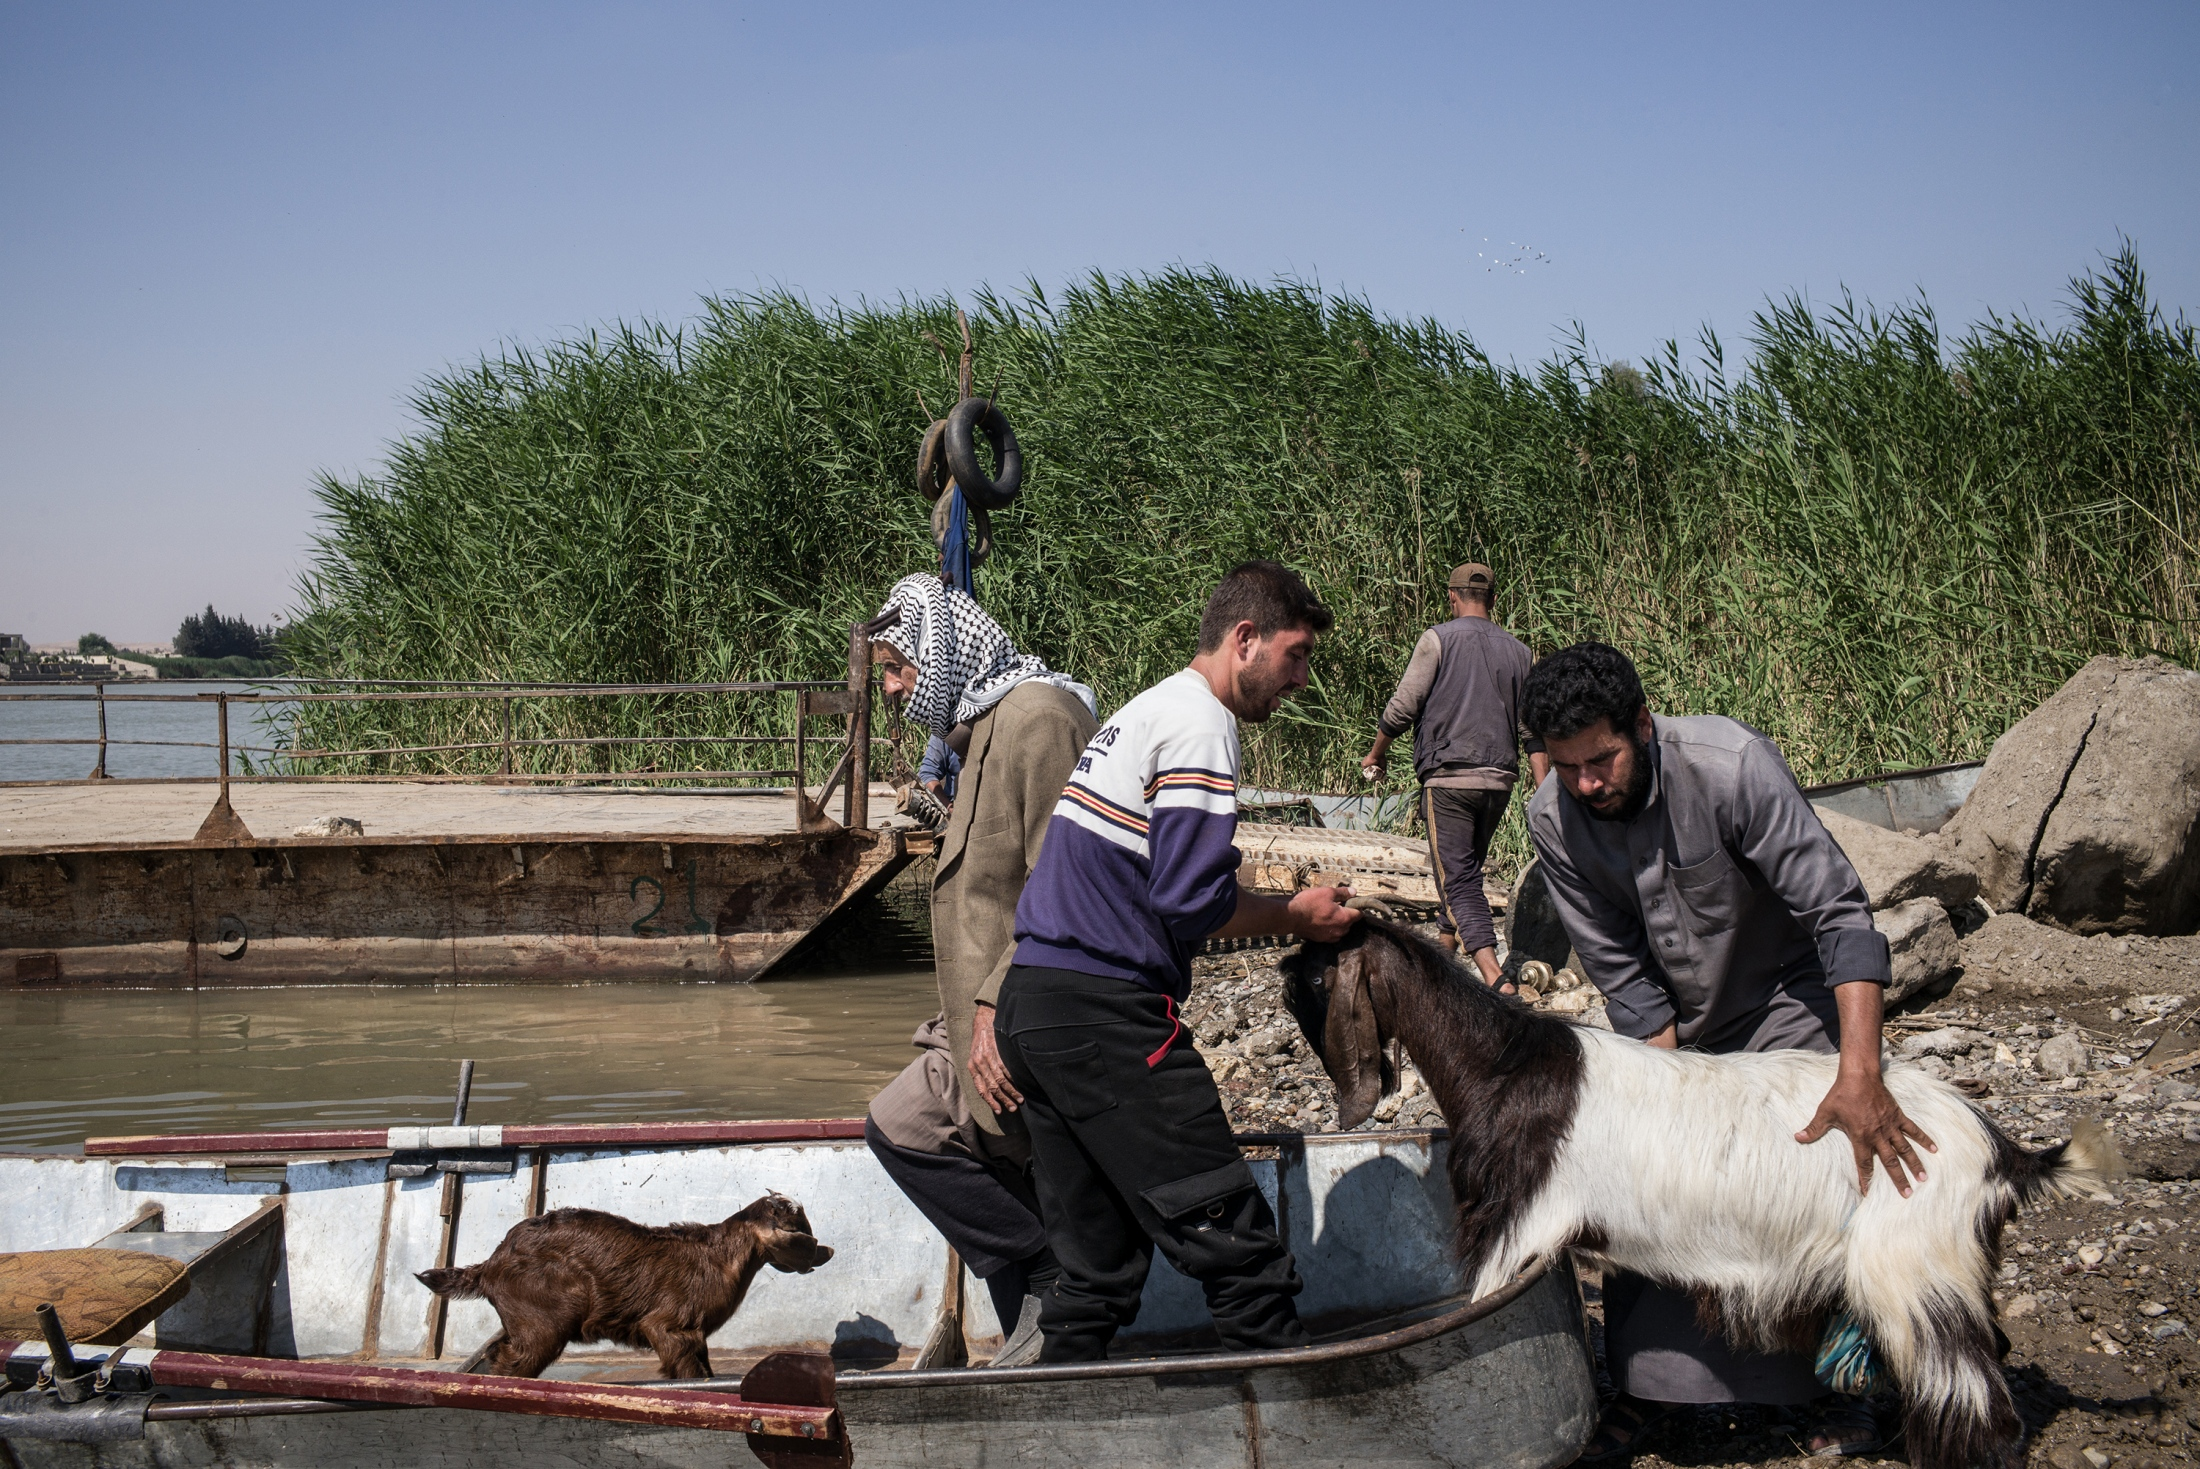 Men load livestock onto a small boat on the north bank of the Euphrates River in Raqqa, Syria, on Monday, May 14, 2018. The destruction of vital infrastructure in the city has forced civilians to use flimsy barges and boats to cross the Euphrates River that divides the northern and southern parts of the city to trade their livestock and crops. Some barges have sunk in recent months, killing at least half a dozen people. As the former capital of ISIS's so-called caliphate, Raqqa is struggling to get back on its feet - free from the Assad regime and ISIS - through an alliance of Kurdish and Arab representatives and its military wing (the Syrian Democratic Forces) and with little assistance from NGOs and foreign donors.